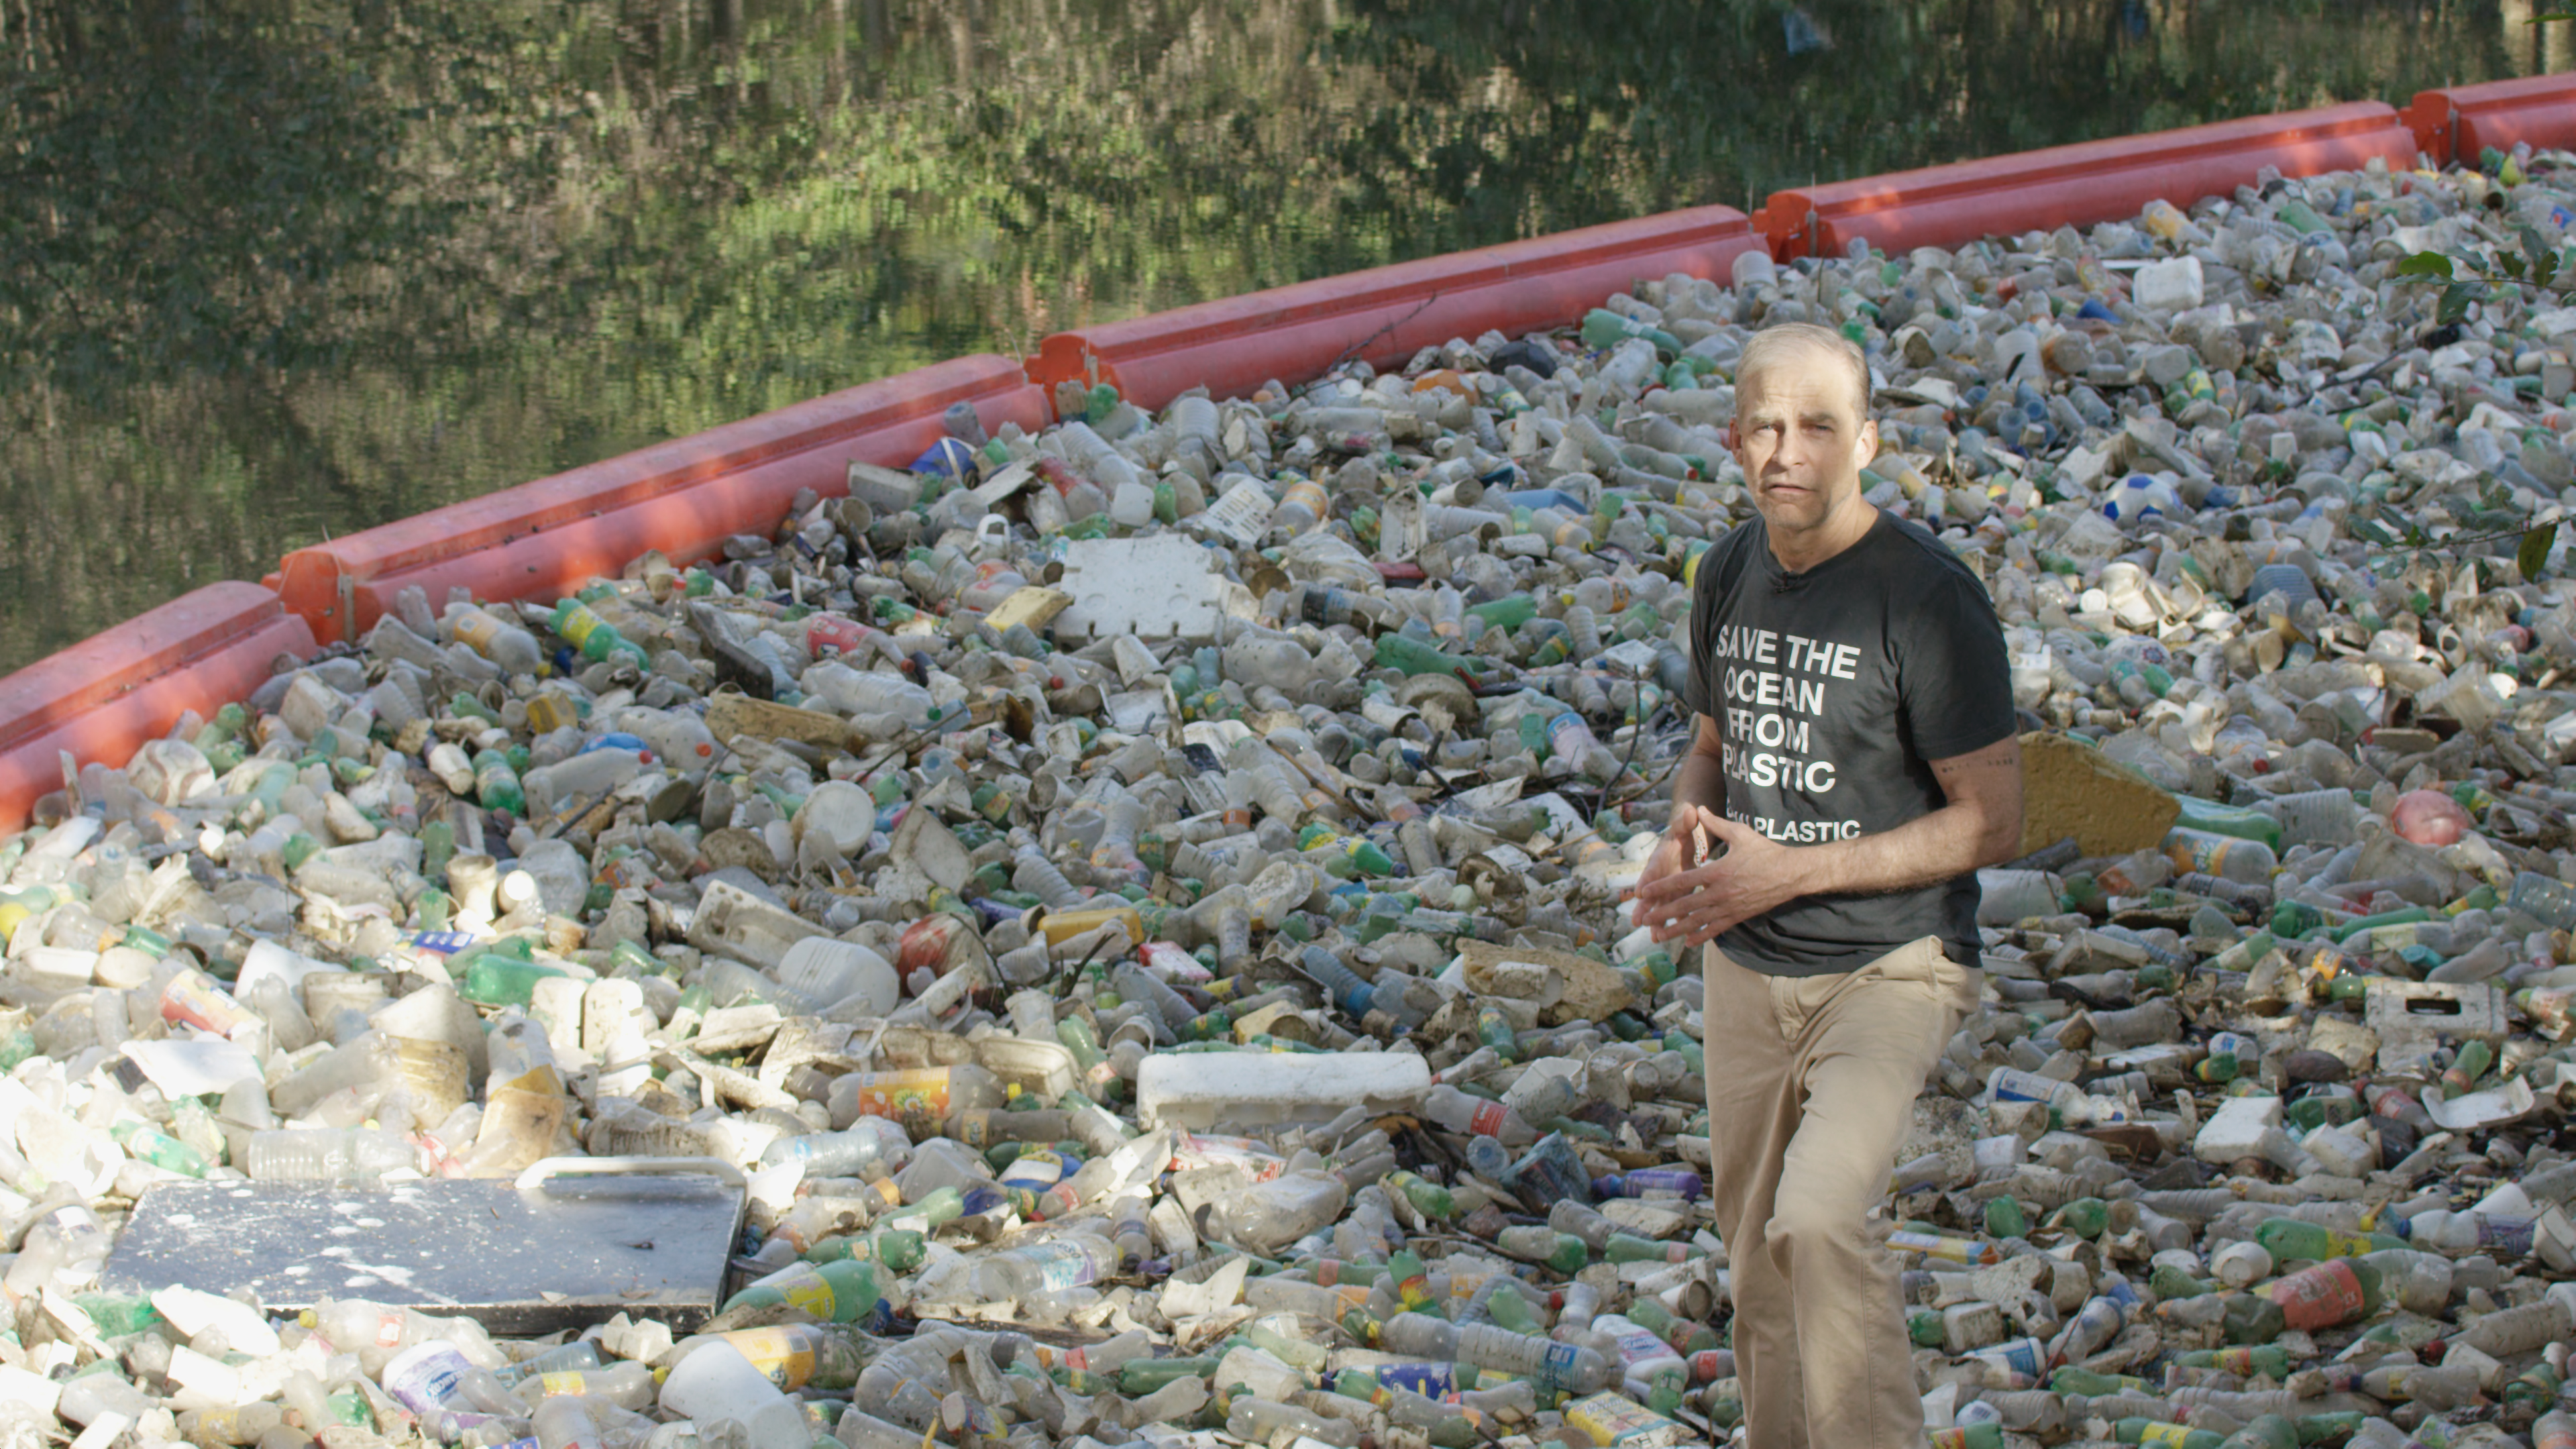 Fisk Johnson at a plastic collection machine in a river